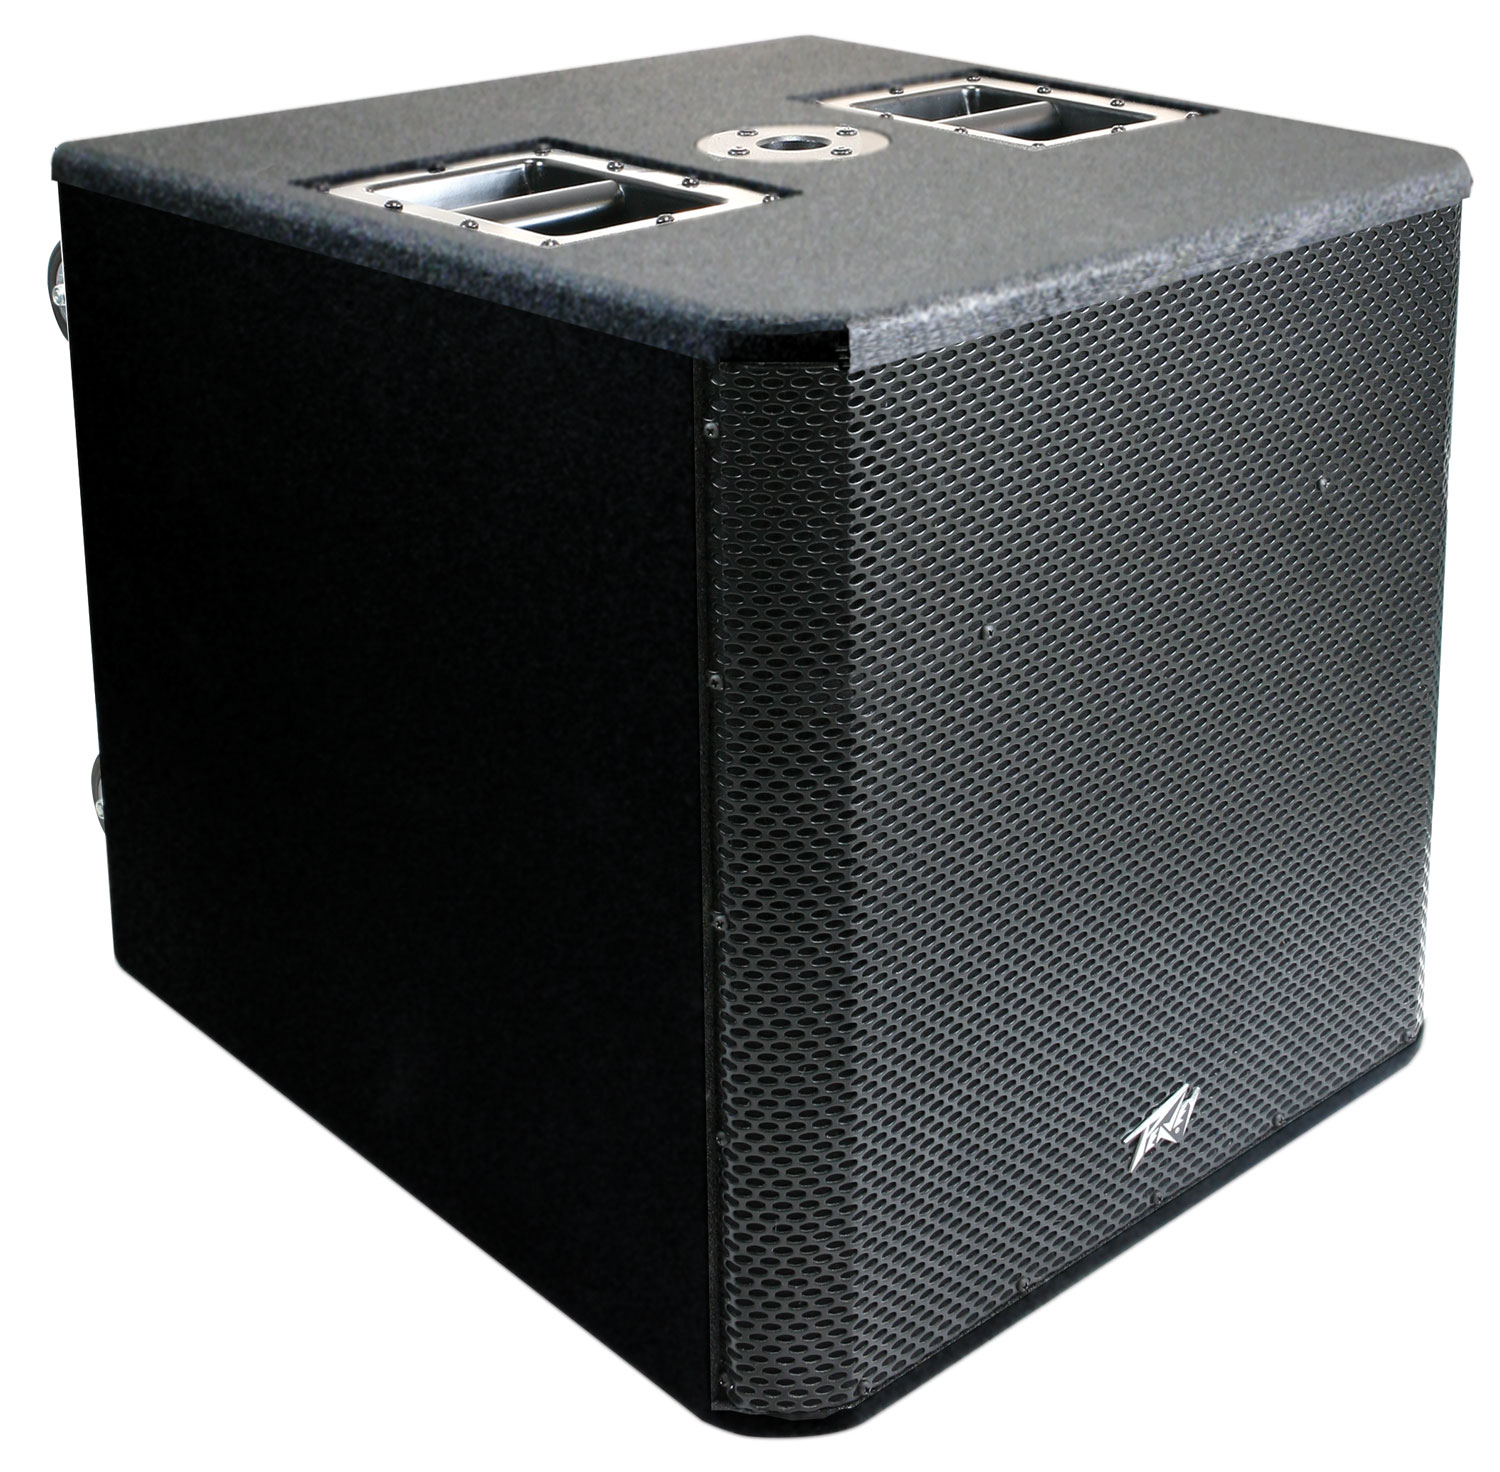 Peavey RBN 118 Powered Subwoofer